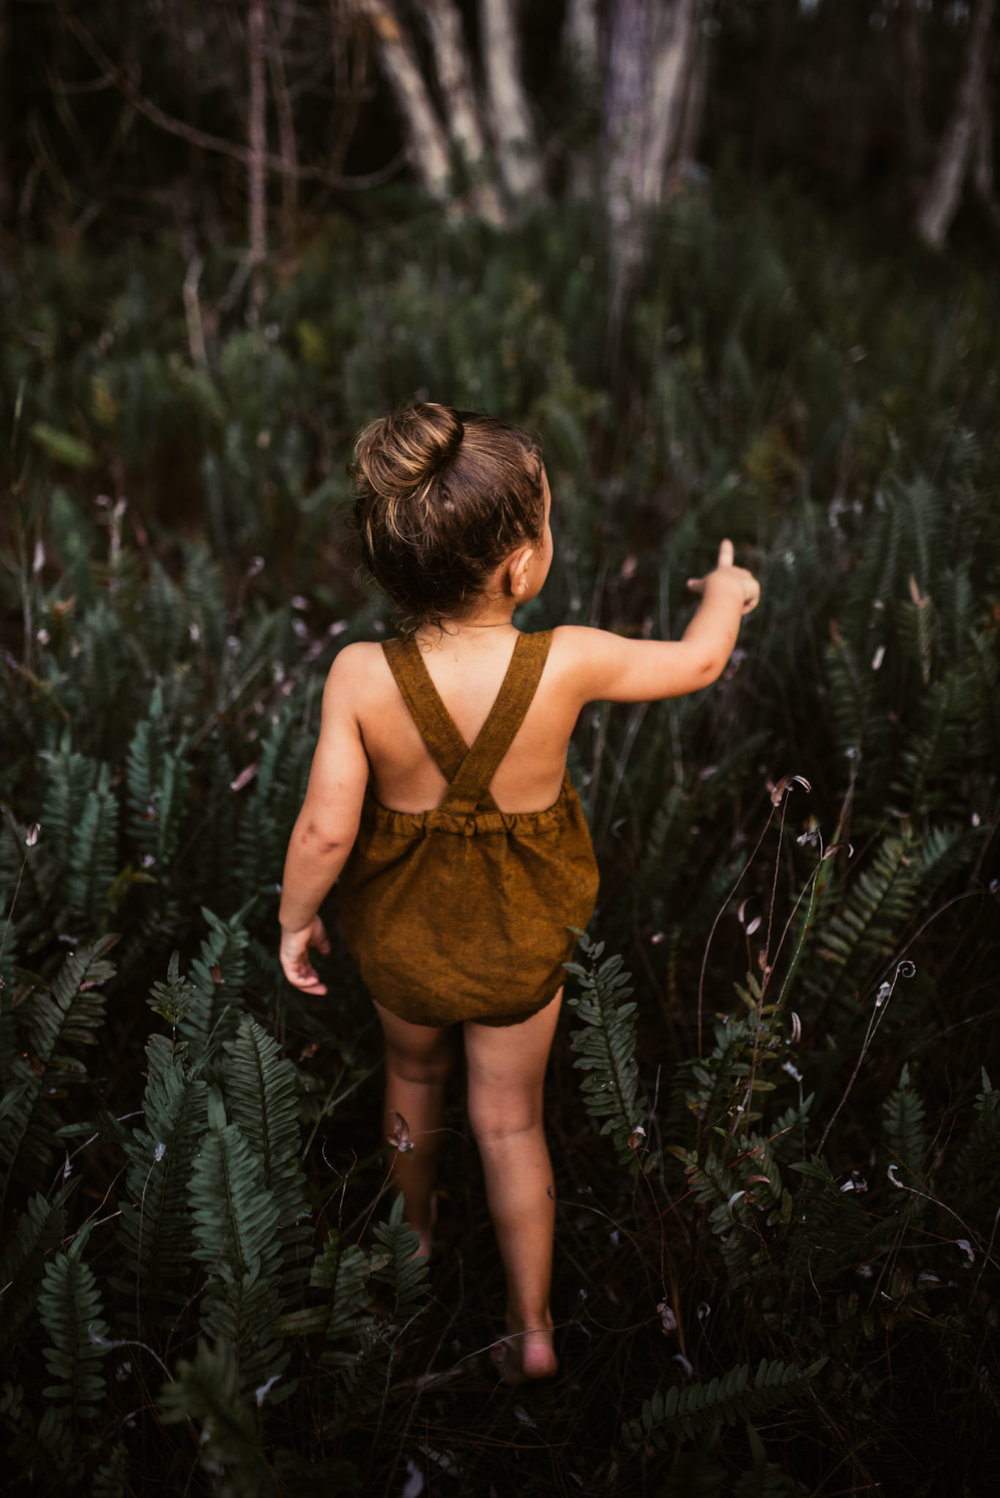 twyla jones photography - treasure coast florida - childrens adventure clothing commercial shoot--51.jpg